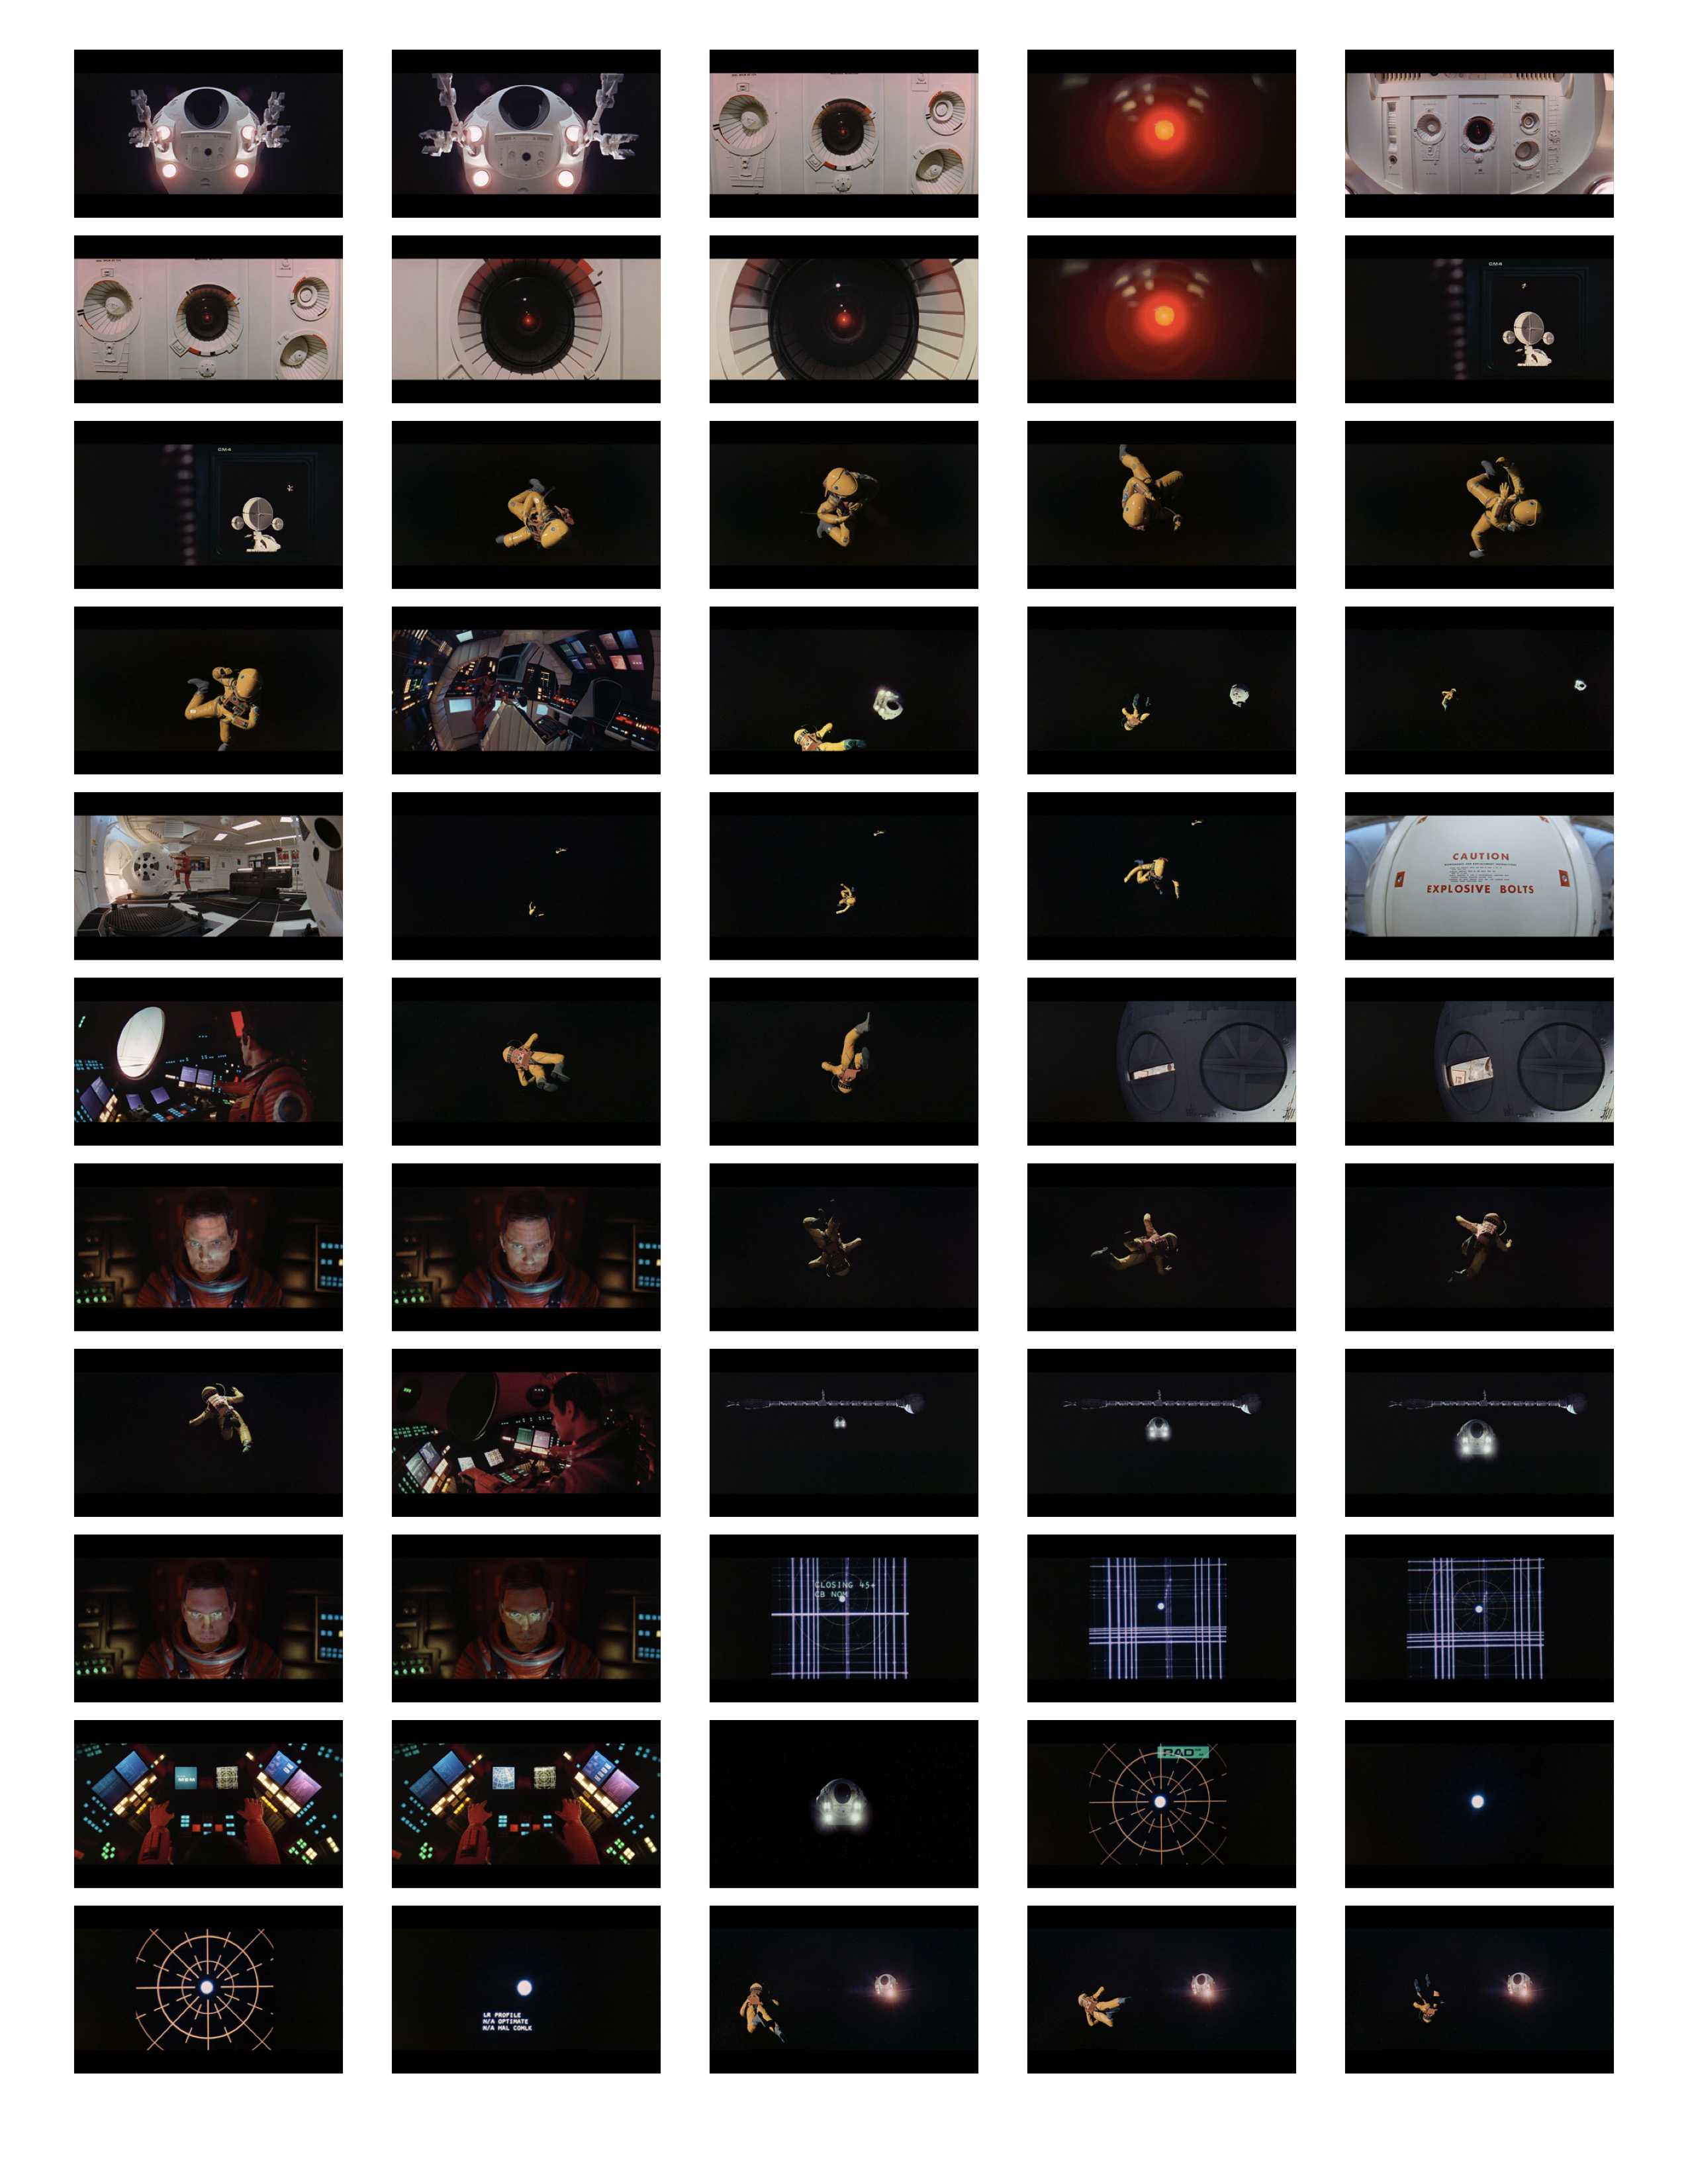 2001 Space Odyssey Cinematography - contact sheets-10